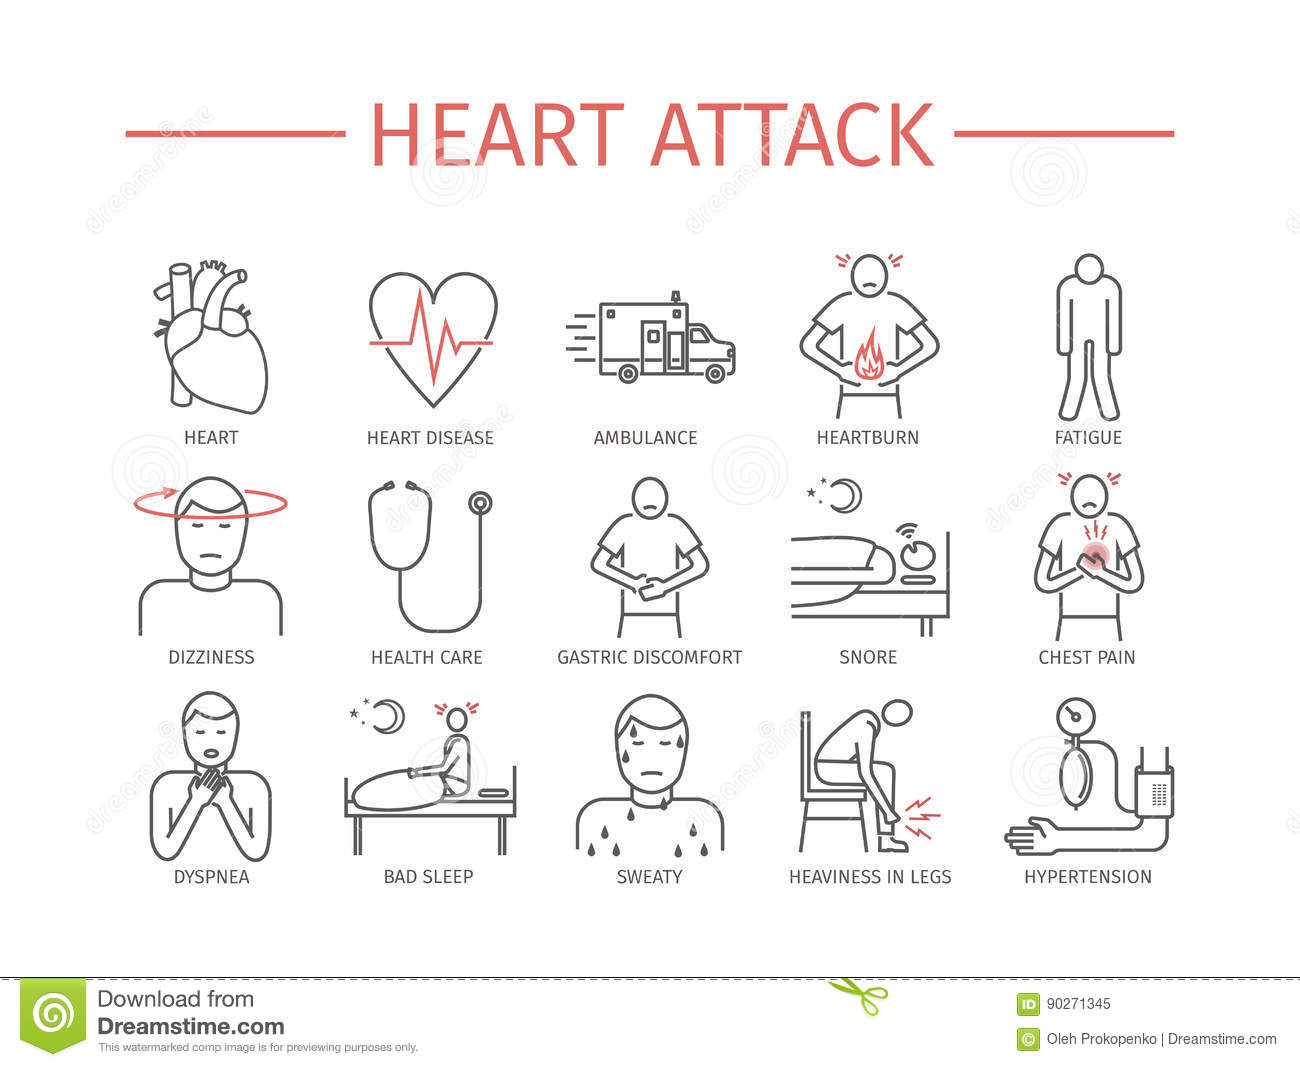 The symptoms diagnosis and treatment of heart attack